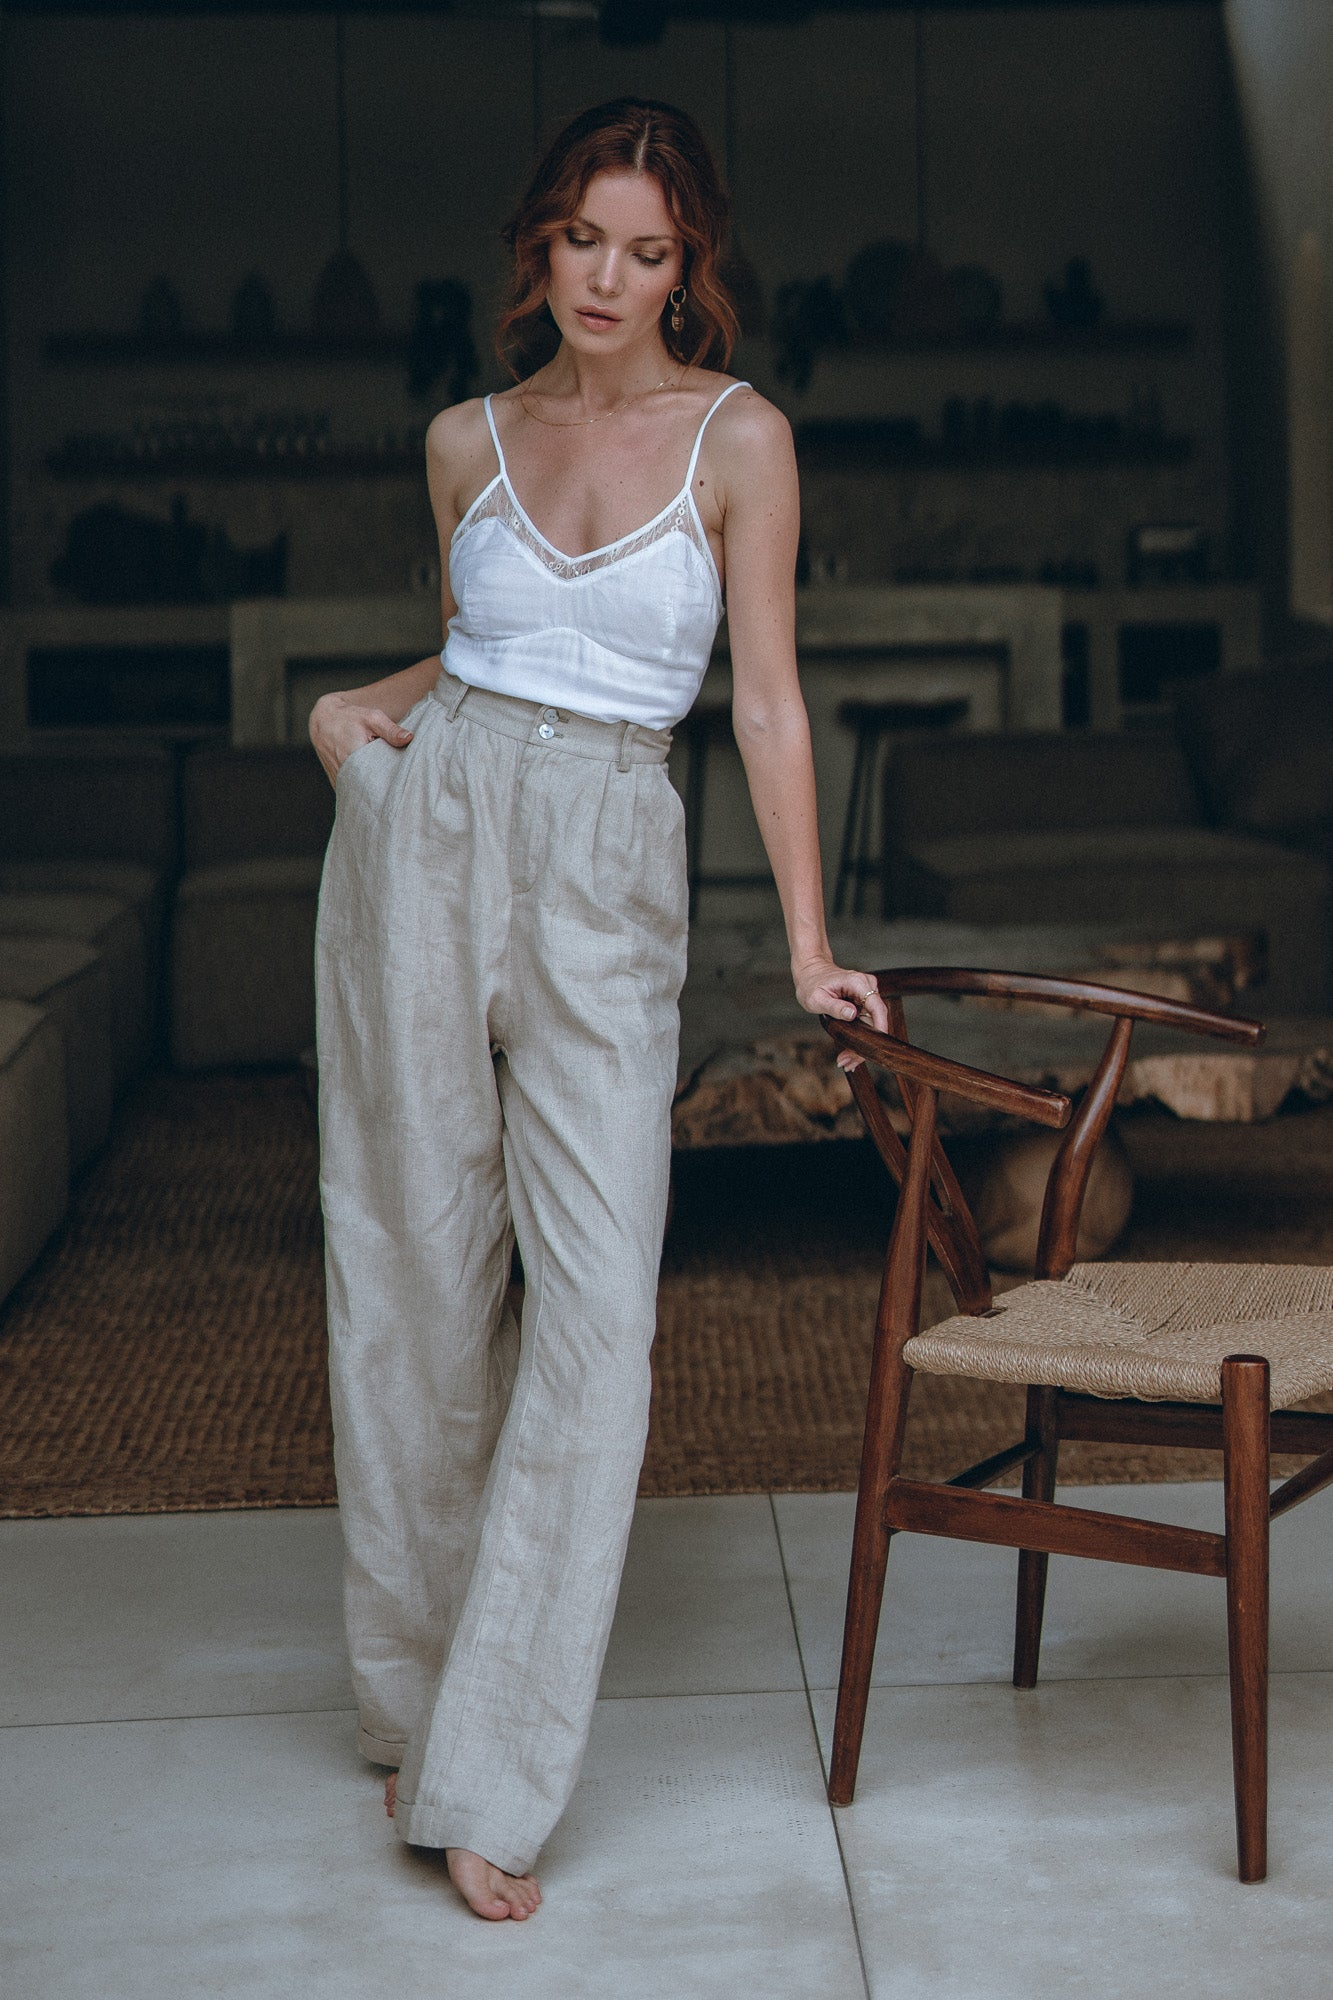 model in high-rise cut pants standing in an open kitchen in a house in Bali